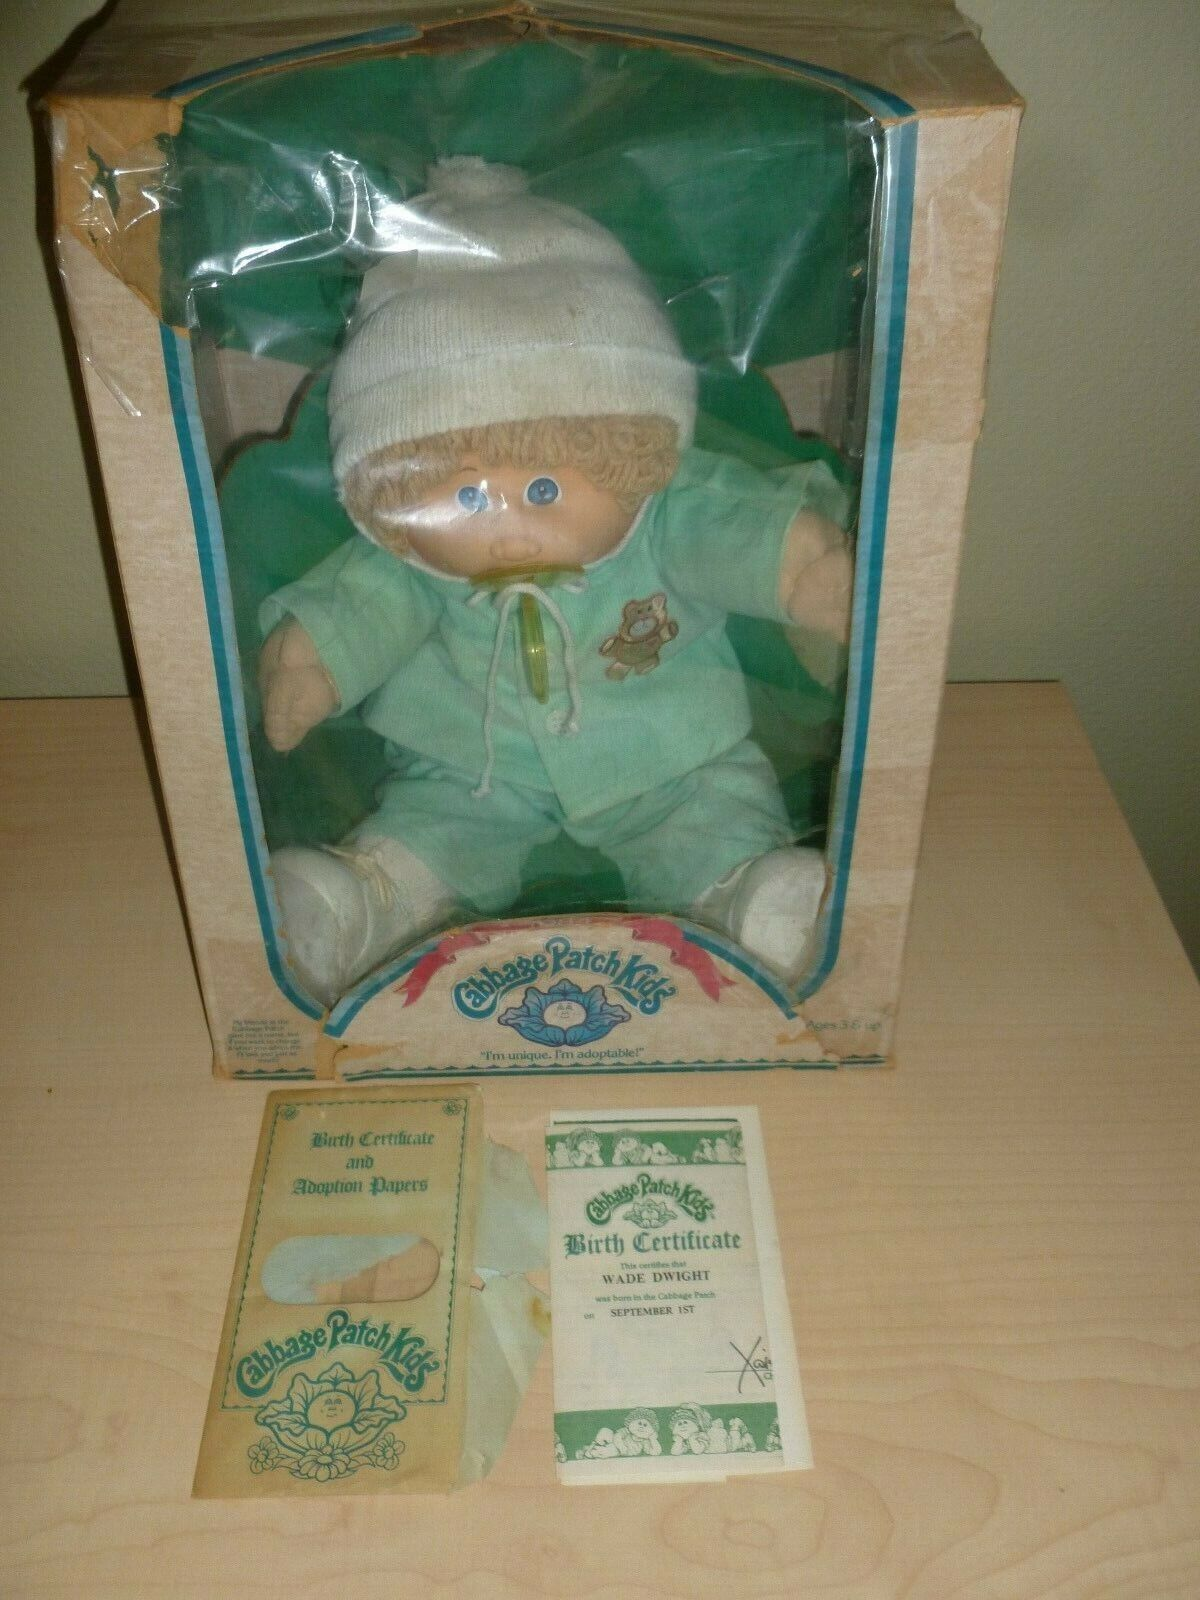 1984 CABBAGE PATCH KID  WADE DWIGHT   Brand New  Original Box w Papers  FREE S&H